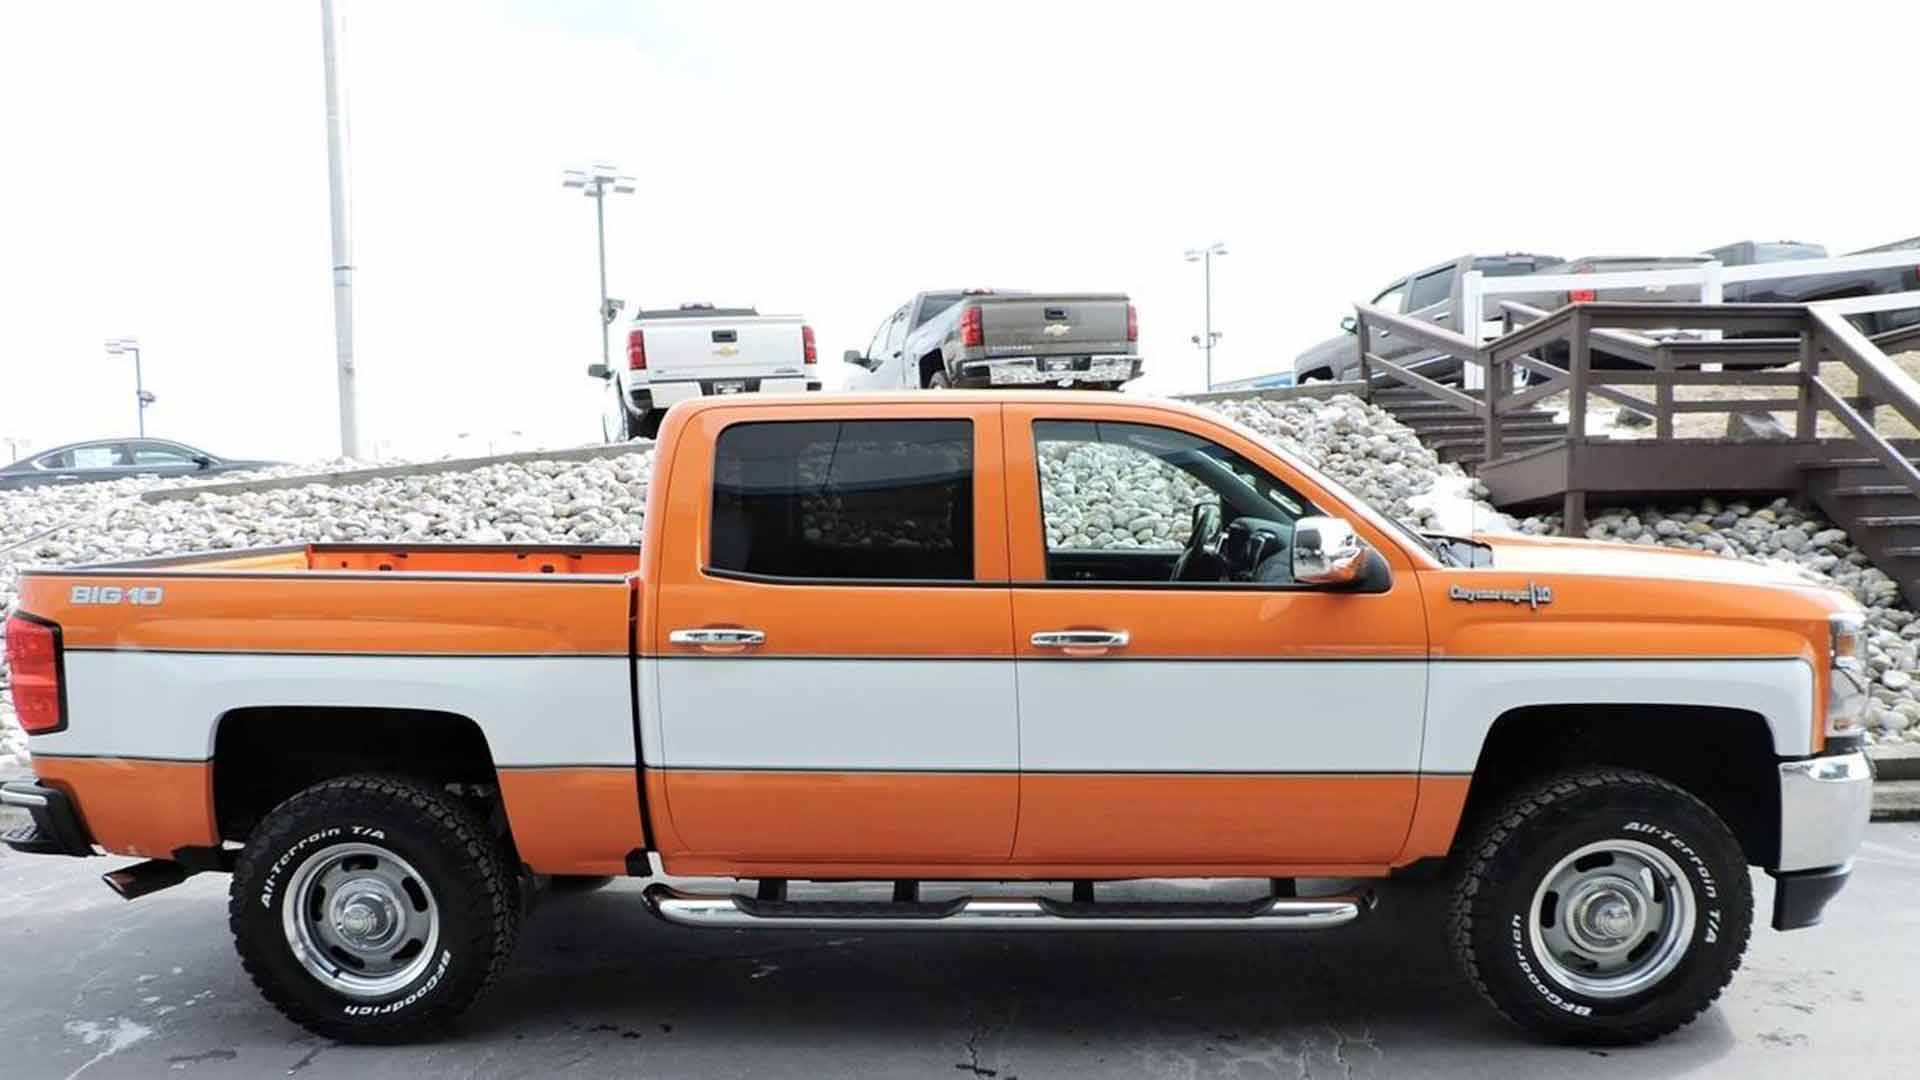 Chevy Silverado Gets Another Modern-Day Cheyenne Makeover